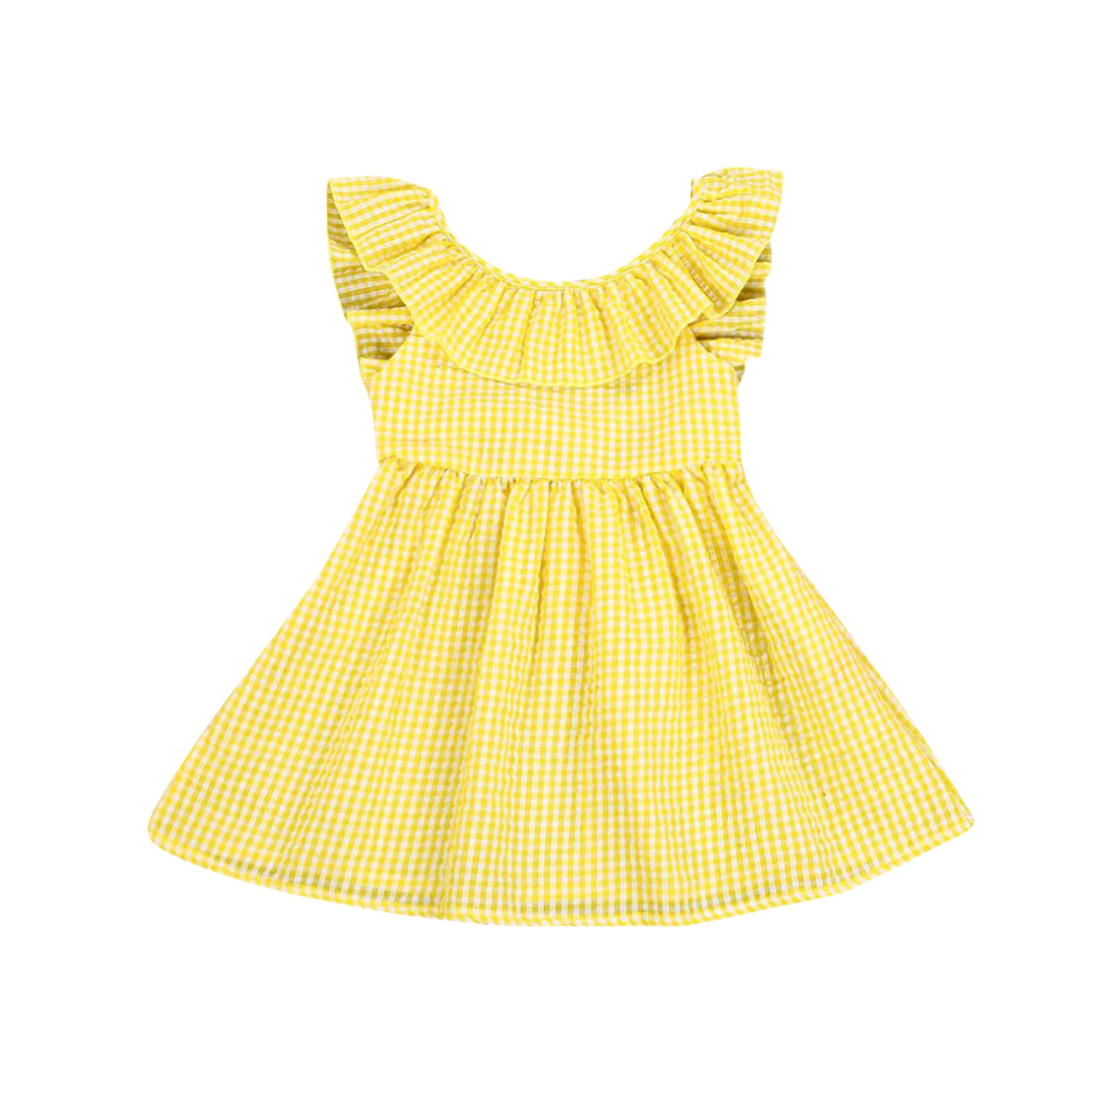 Yellow Plaids Baby Girl Summer Cute Dress Outfits Backless Lace Up Princess Dress Party Ruffles Tutu Sundress Clothes 20pcs xlr balanced wire male female connector cable audio microphone electric guitar cord